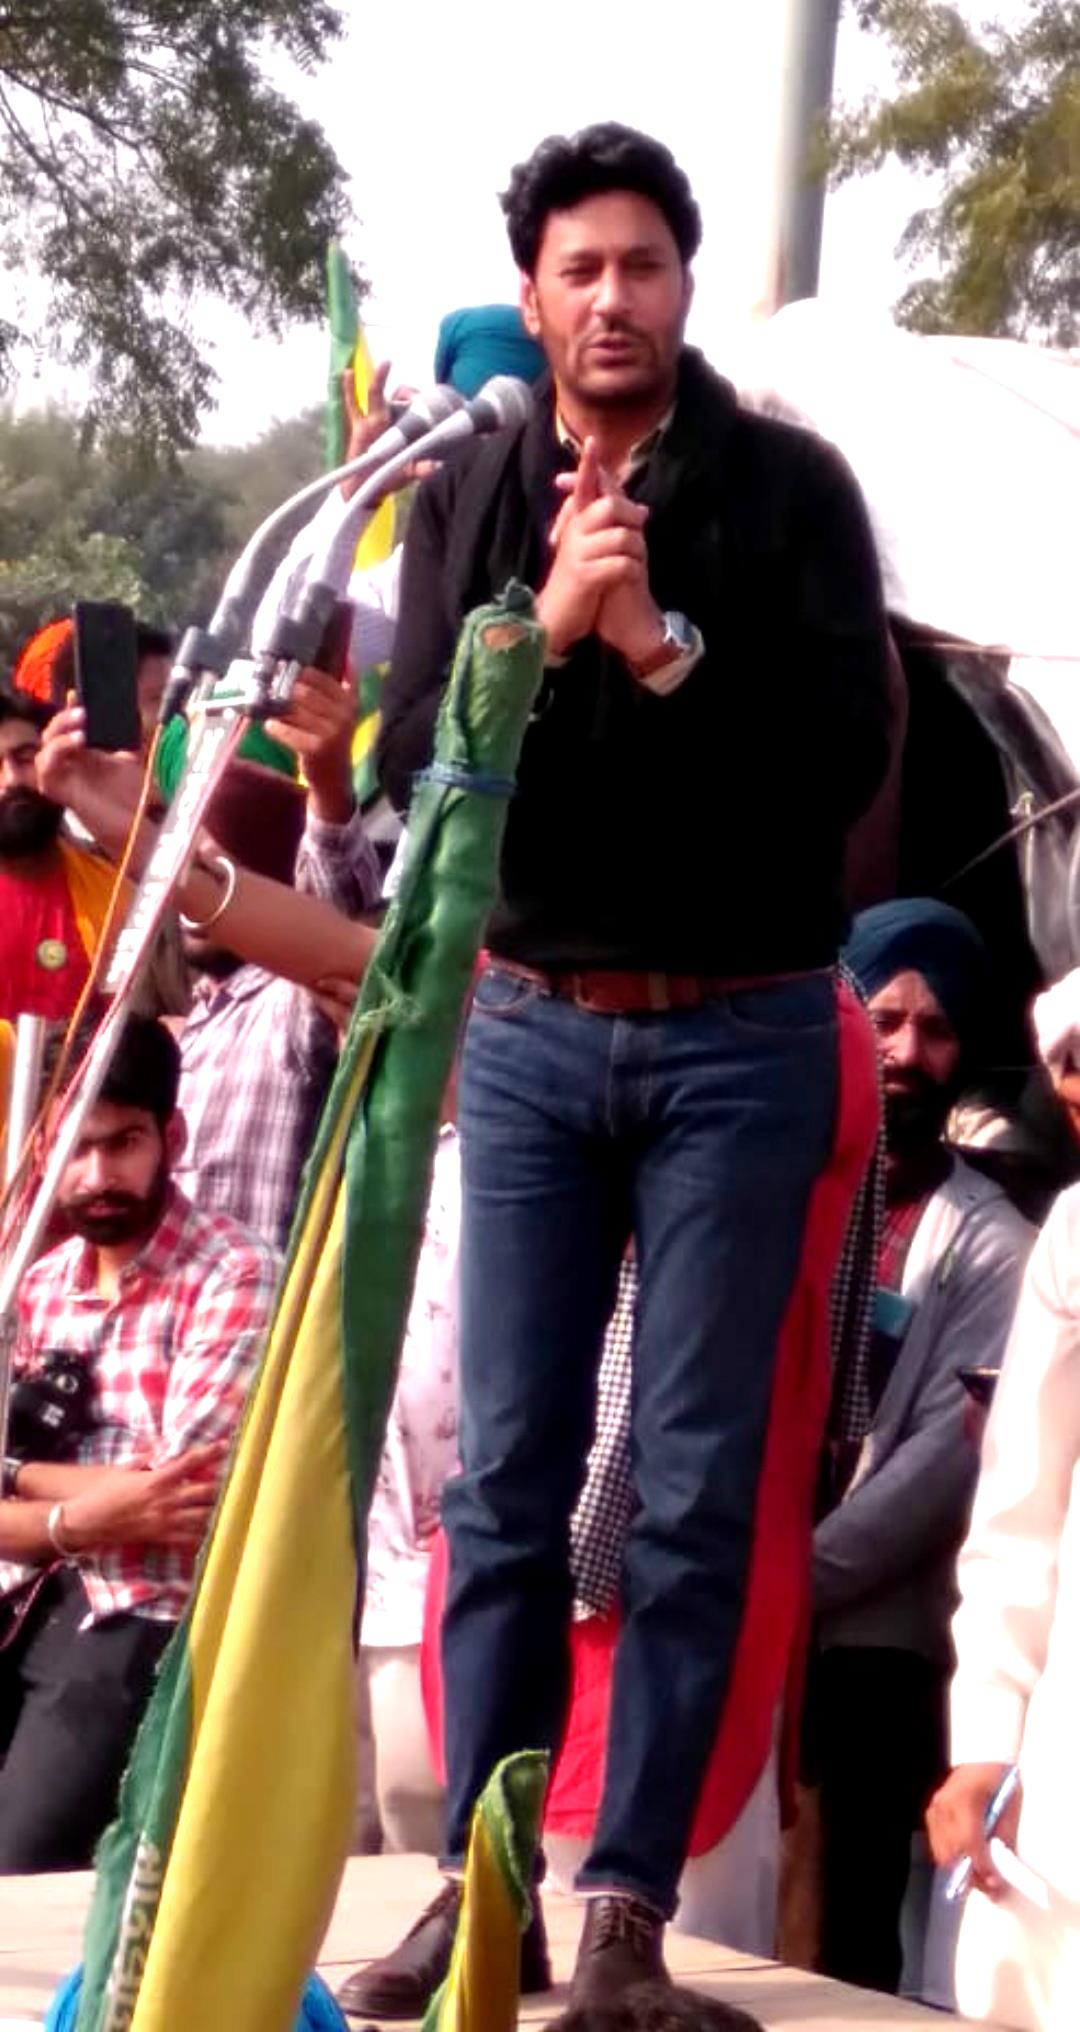 Punjabi singers enliven atmosphere at farmers' protest in Haryana's Bahadurgarh